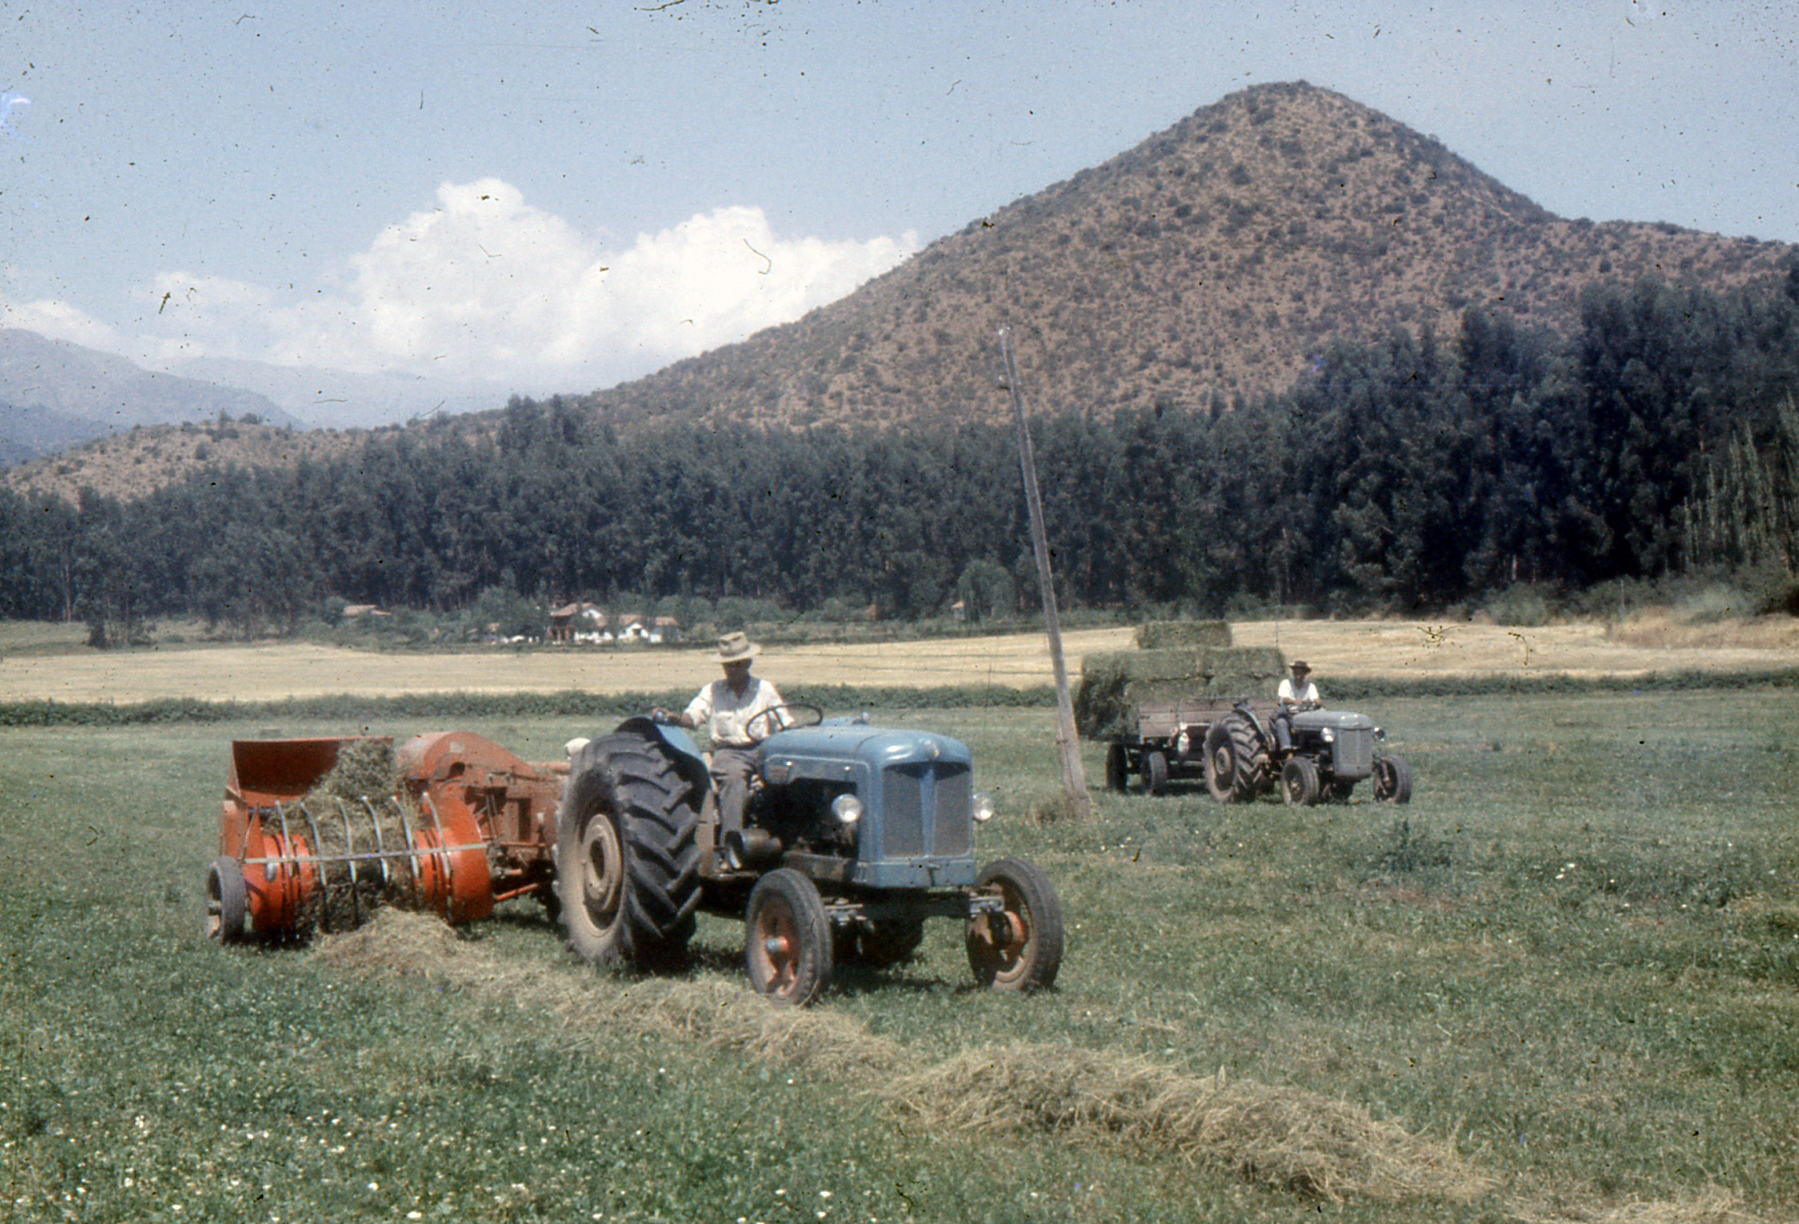 Enterreno - Fotos históricas de chile - fotos antiguas de Chile - Tractor en Fundo La Punta, 1963